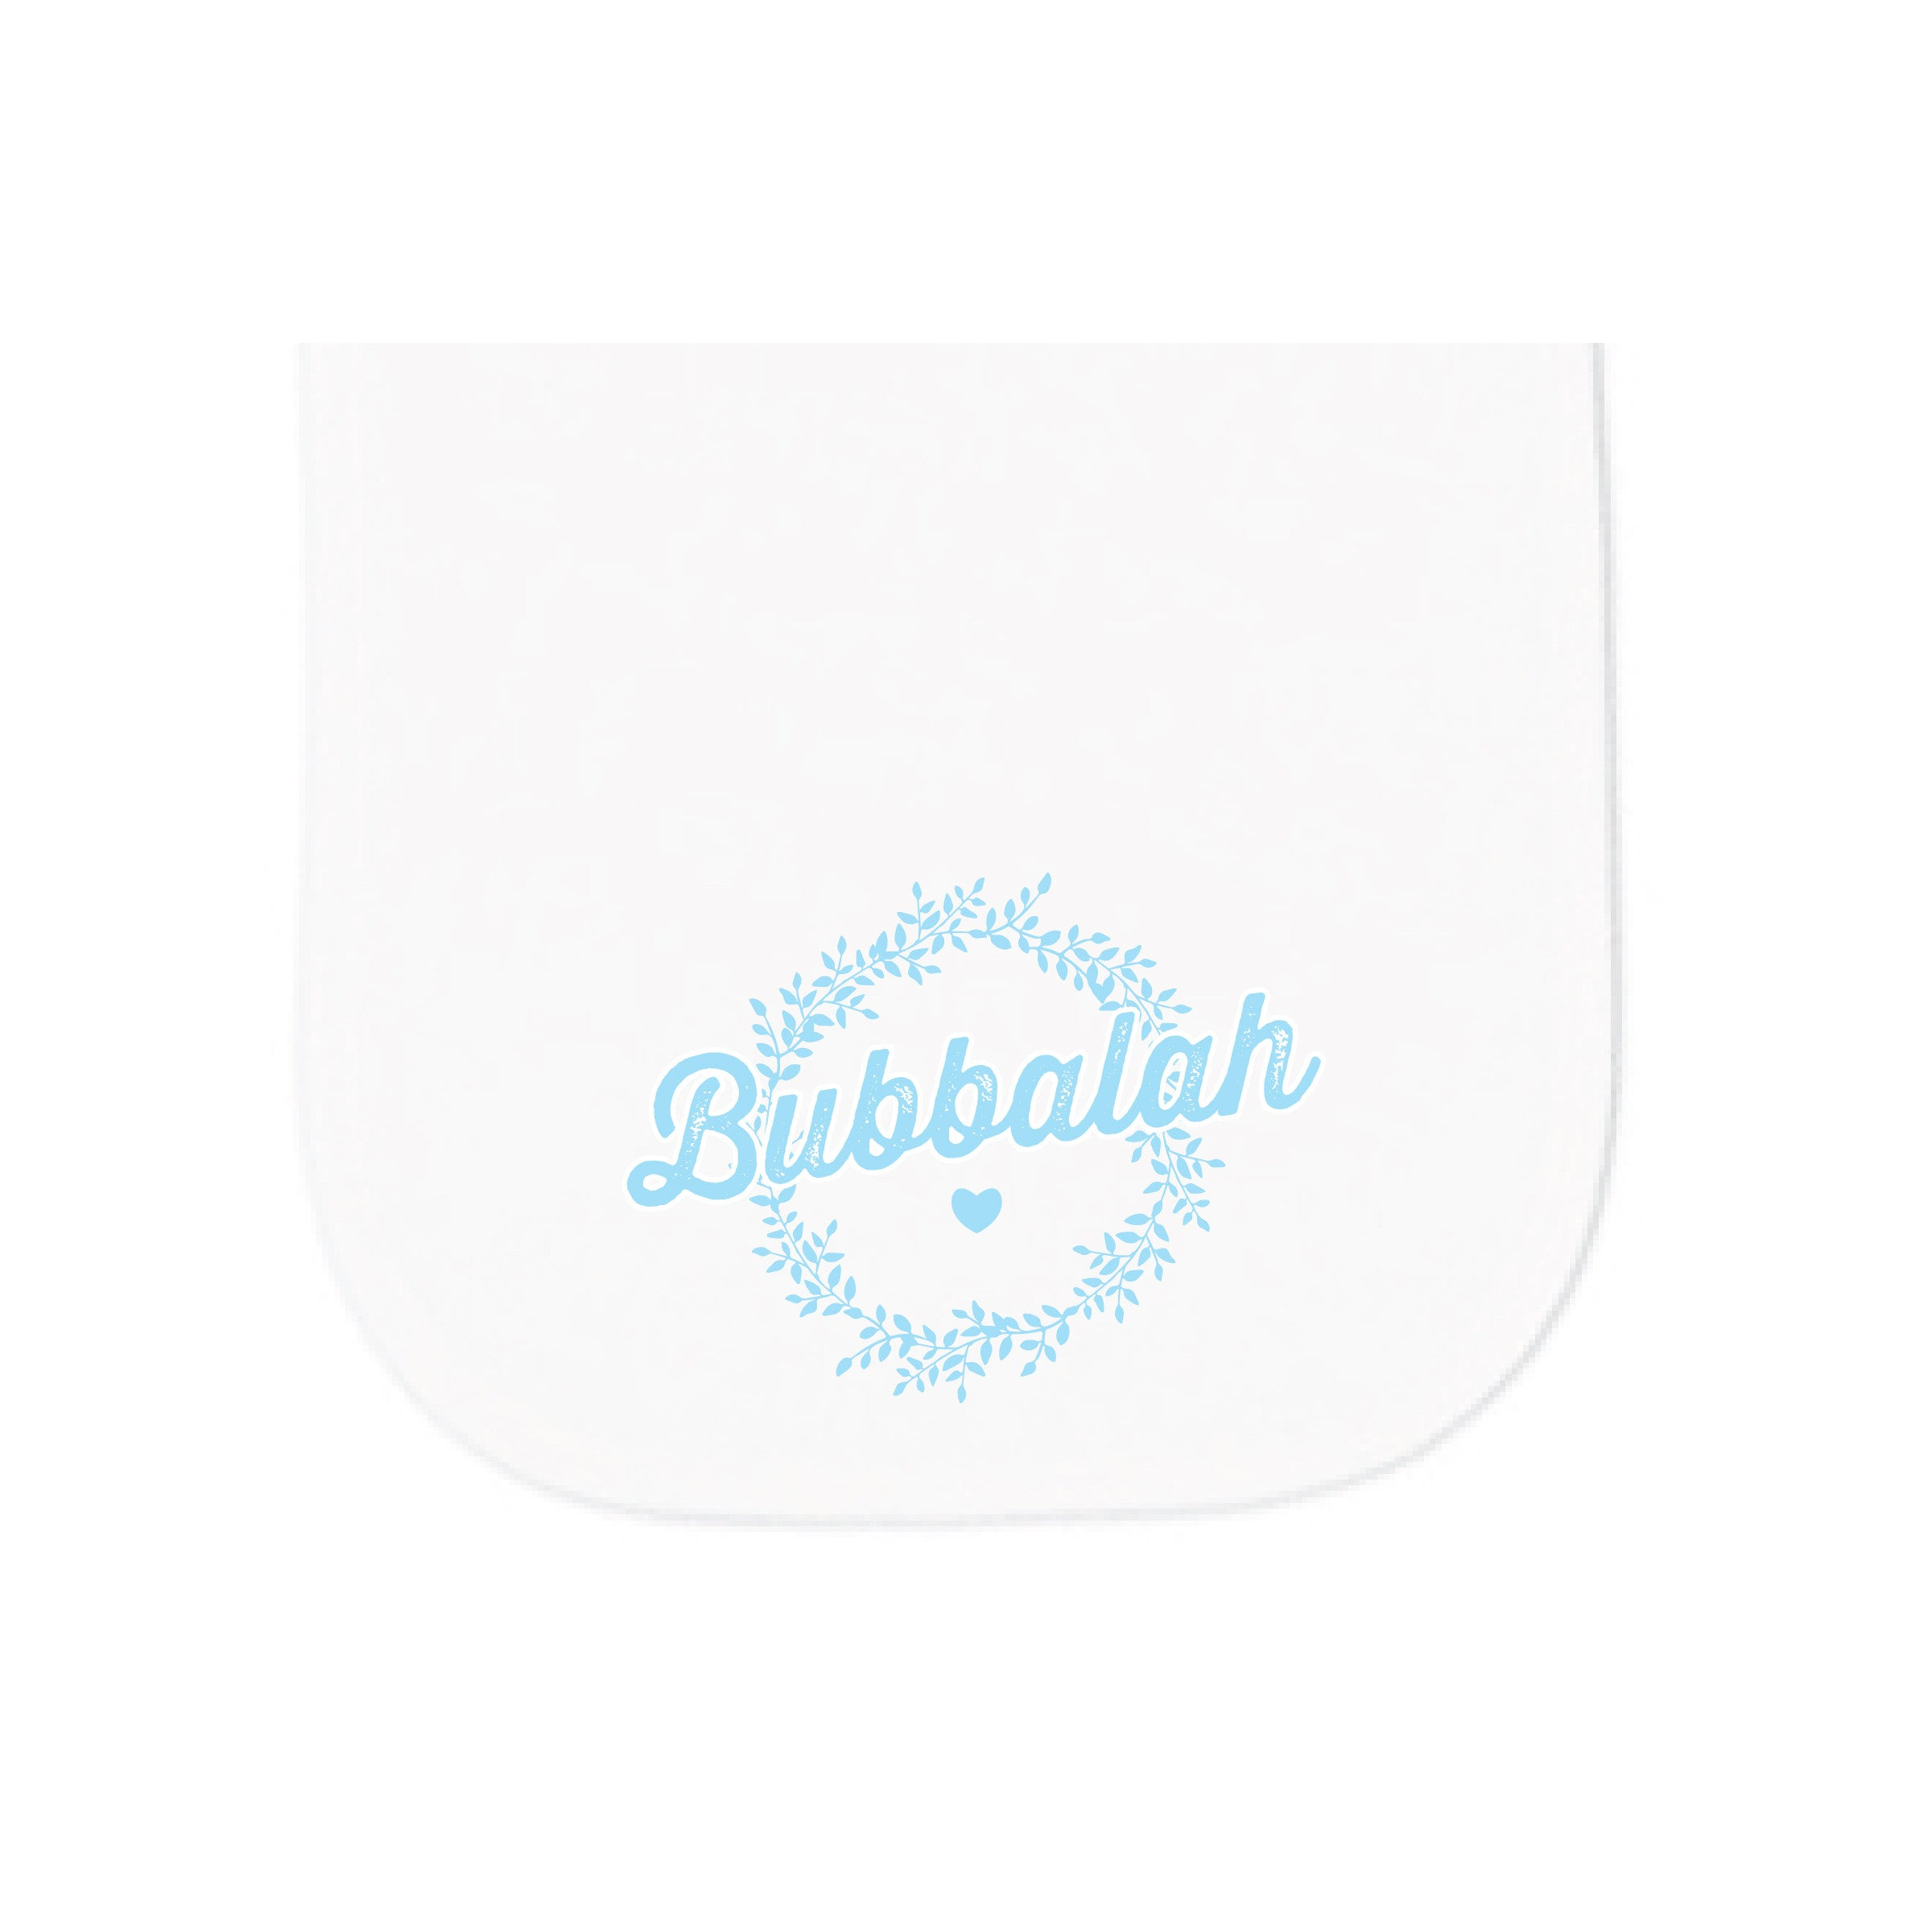 Bubbalah White Burp cloth with Sky Blue ink